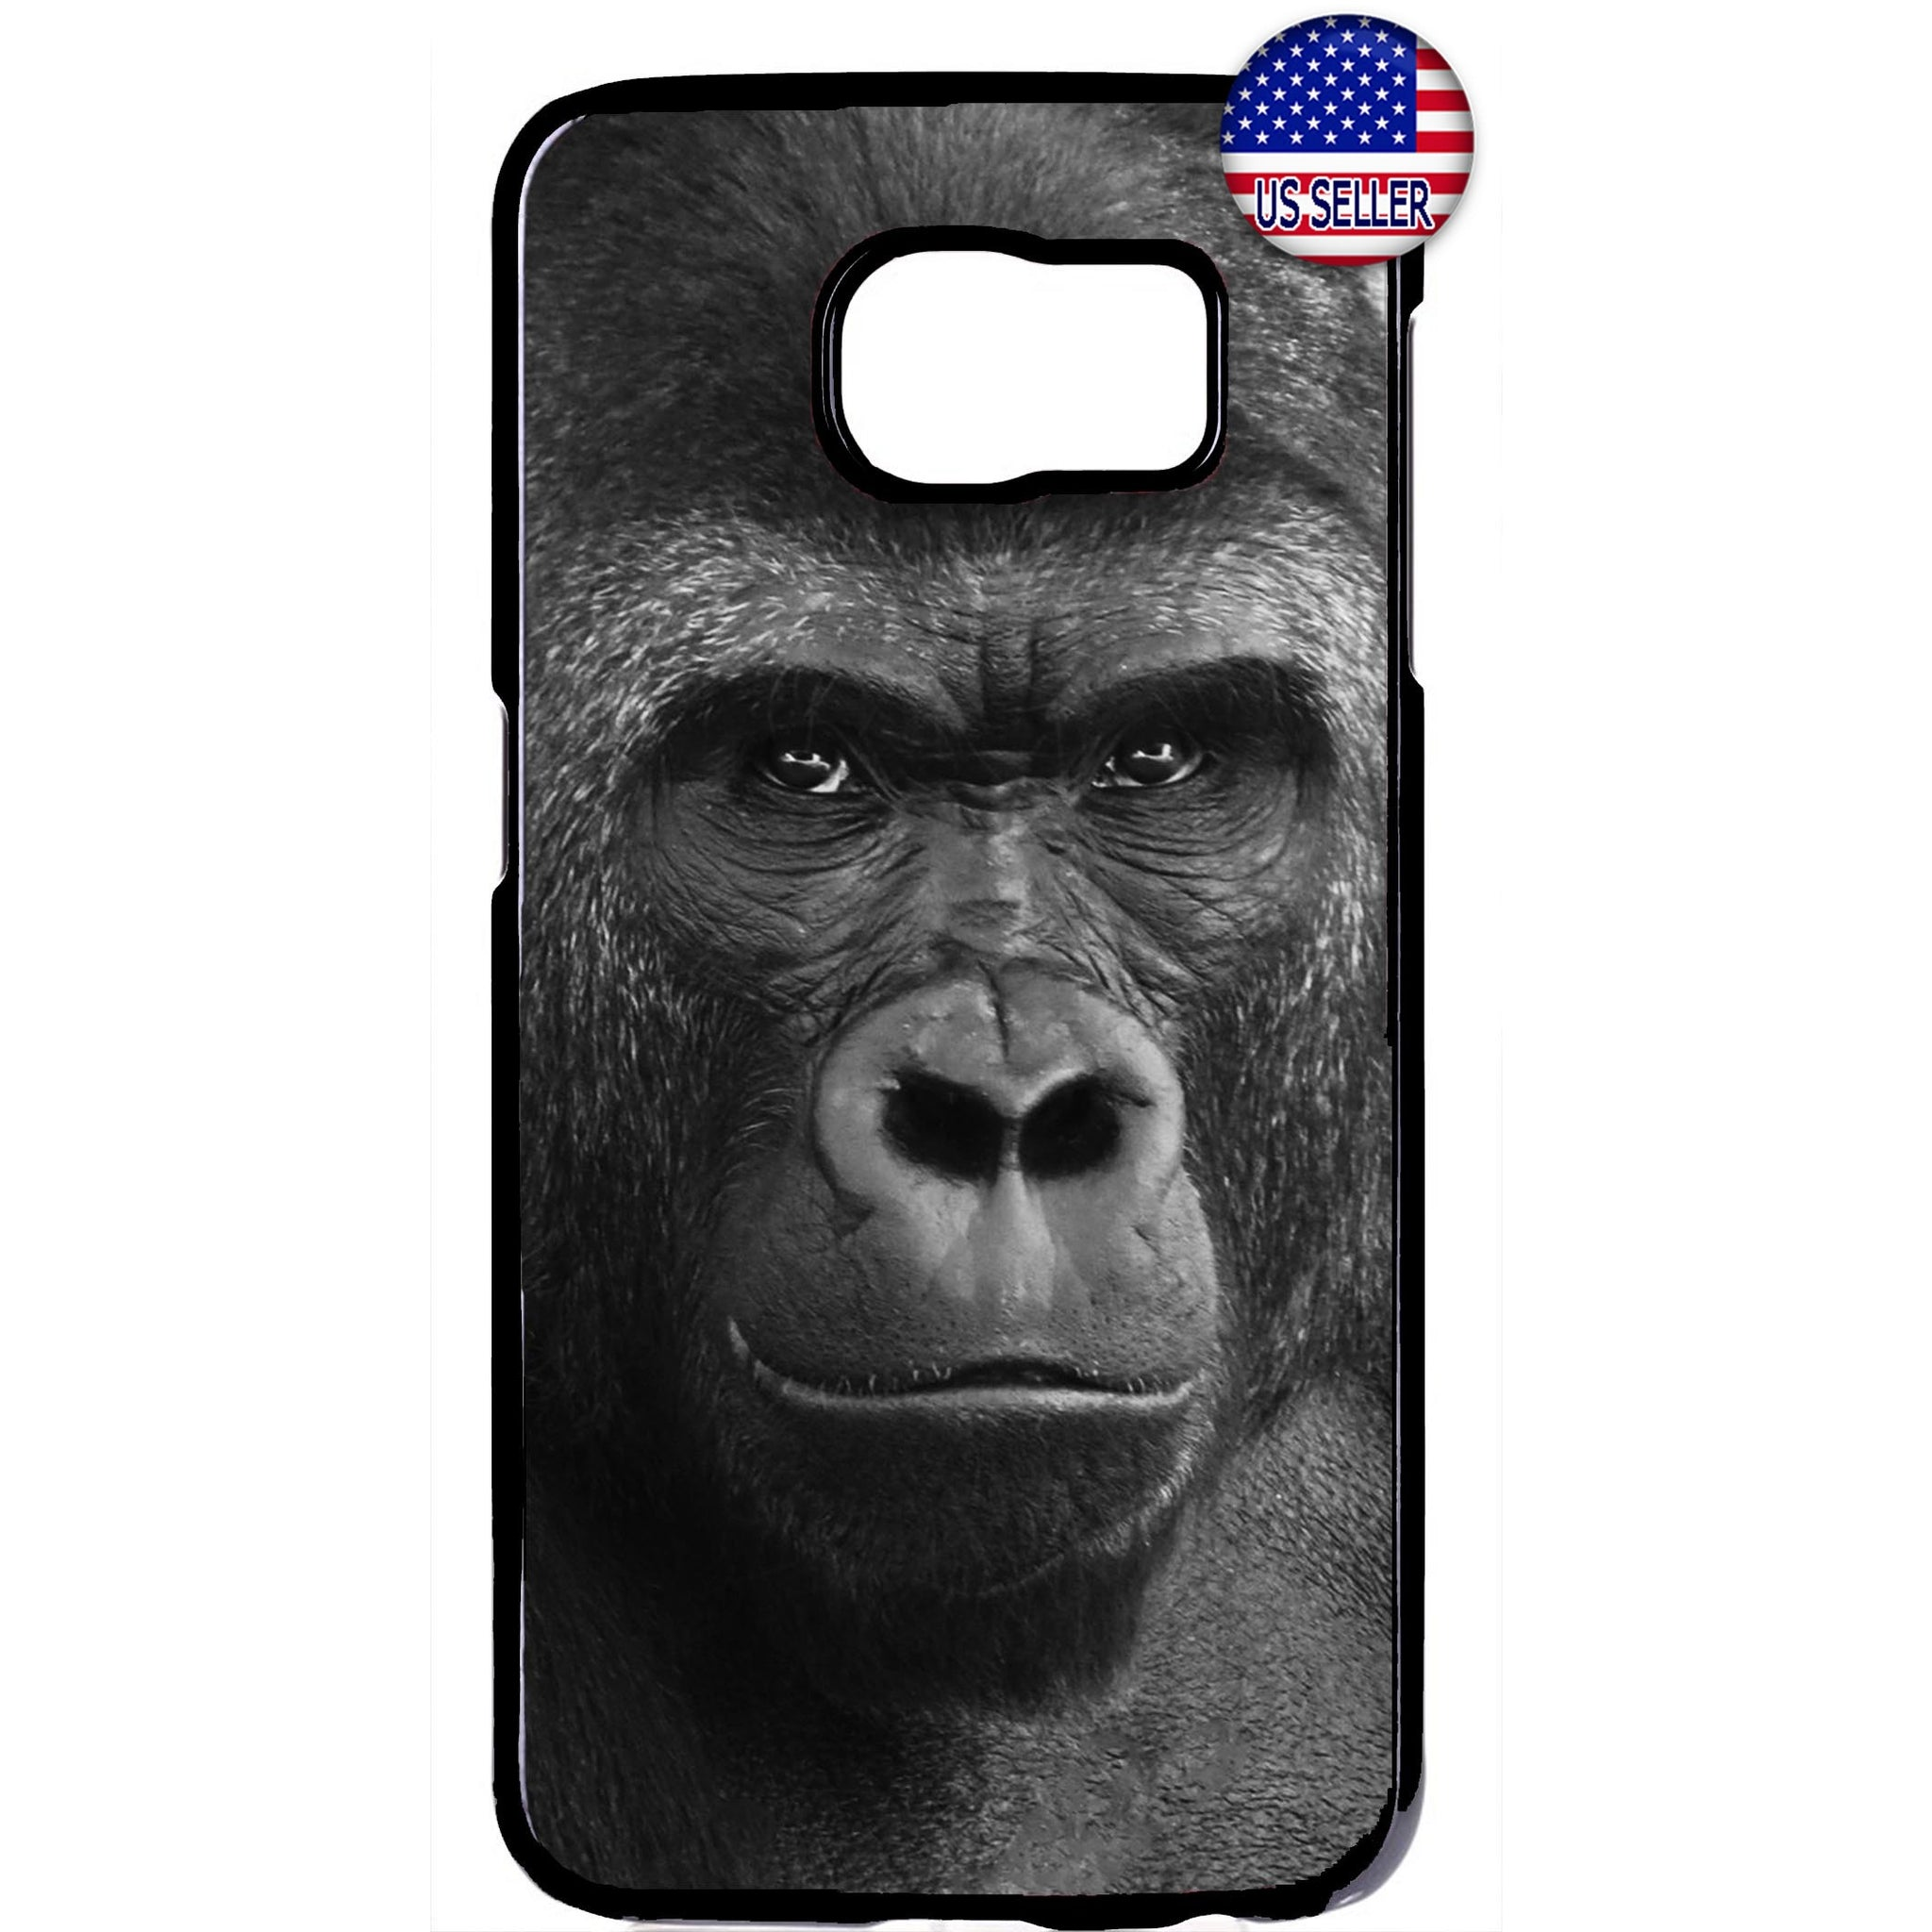 Wild Gorilla Monkey Rubber Case Cover For Samsung Galaxy